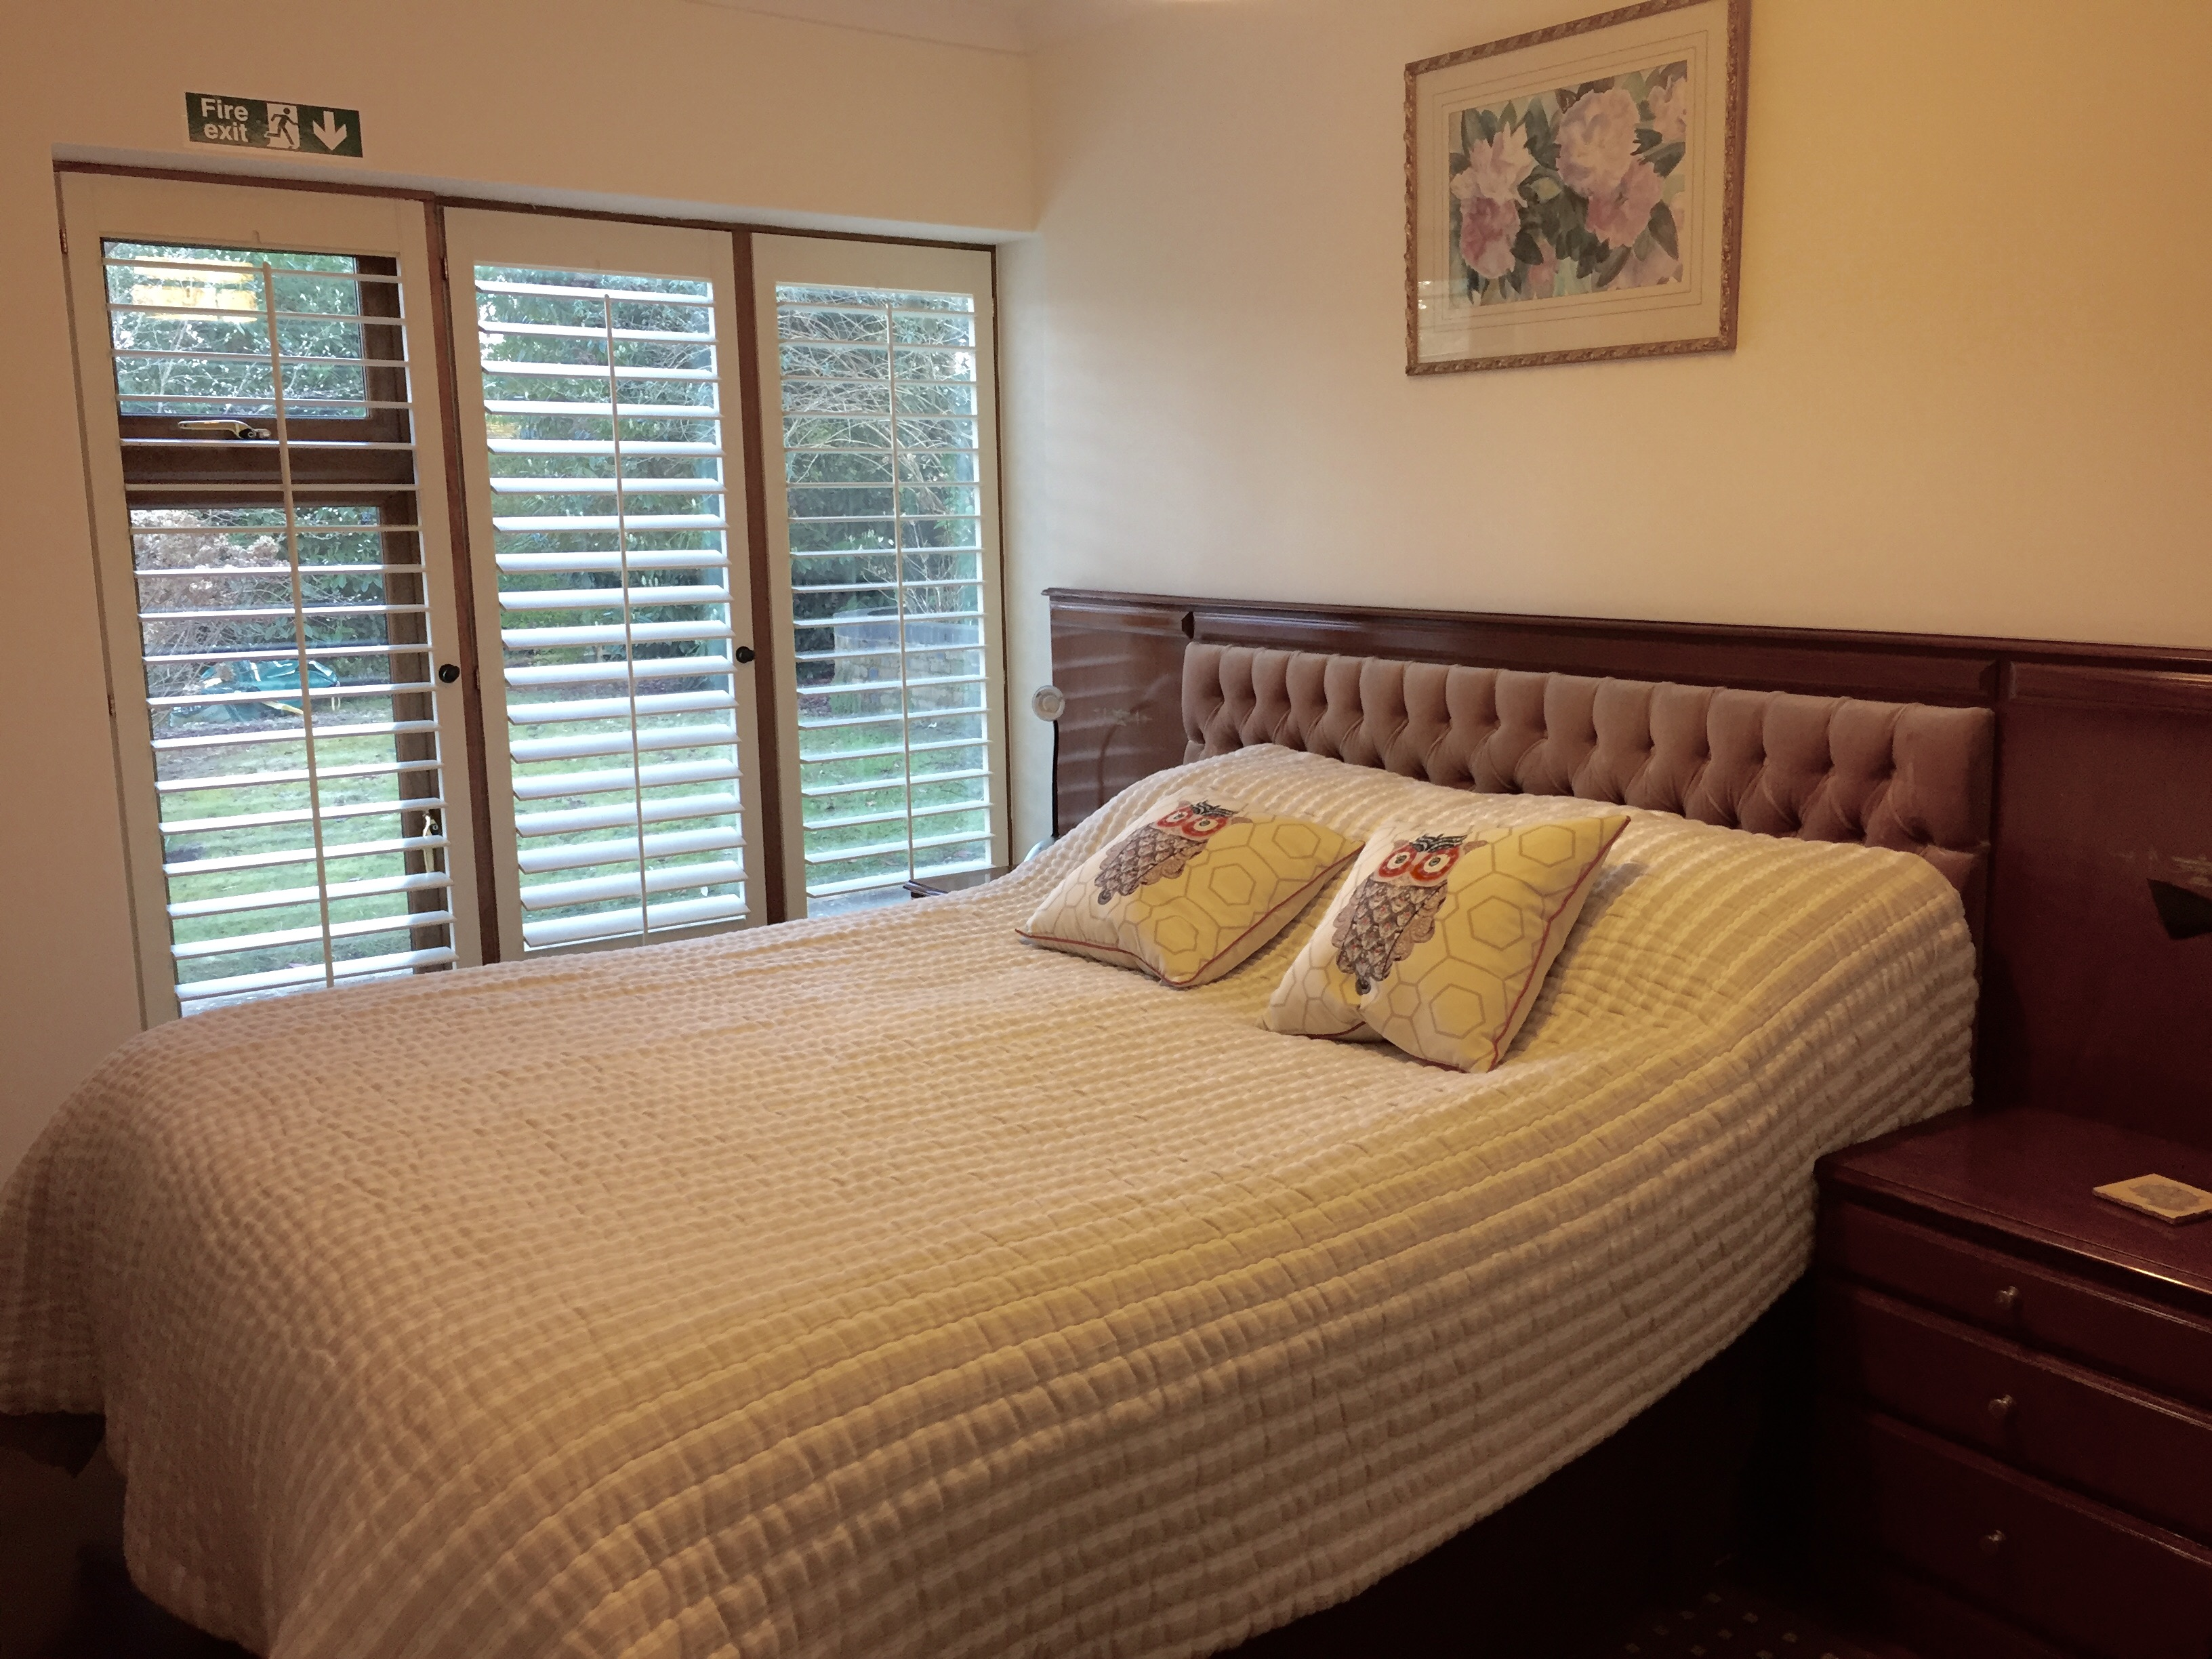 GALLERY Ightham bed and breakfast